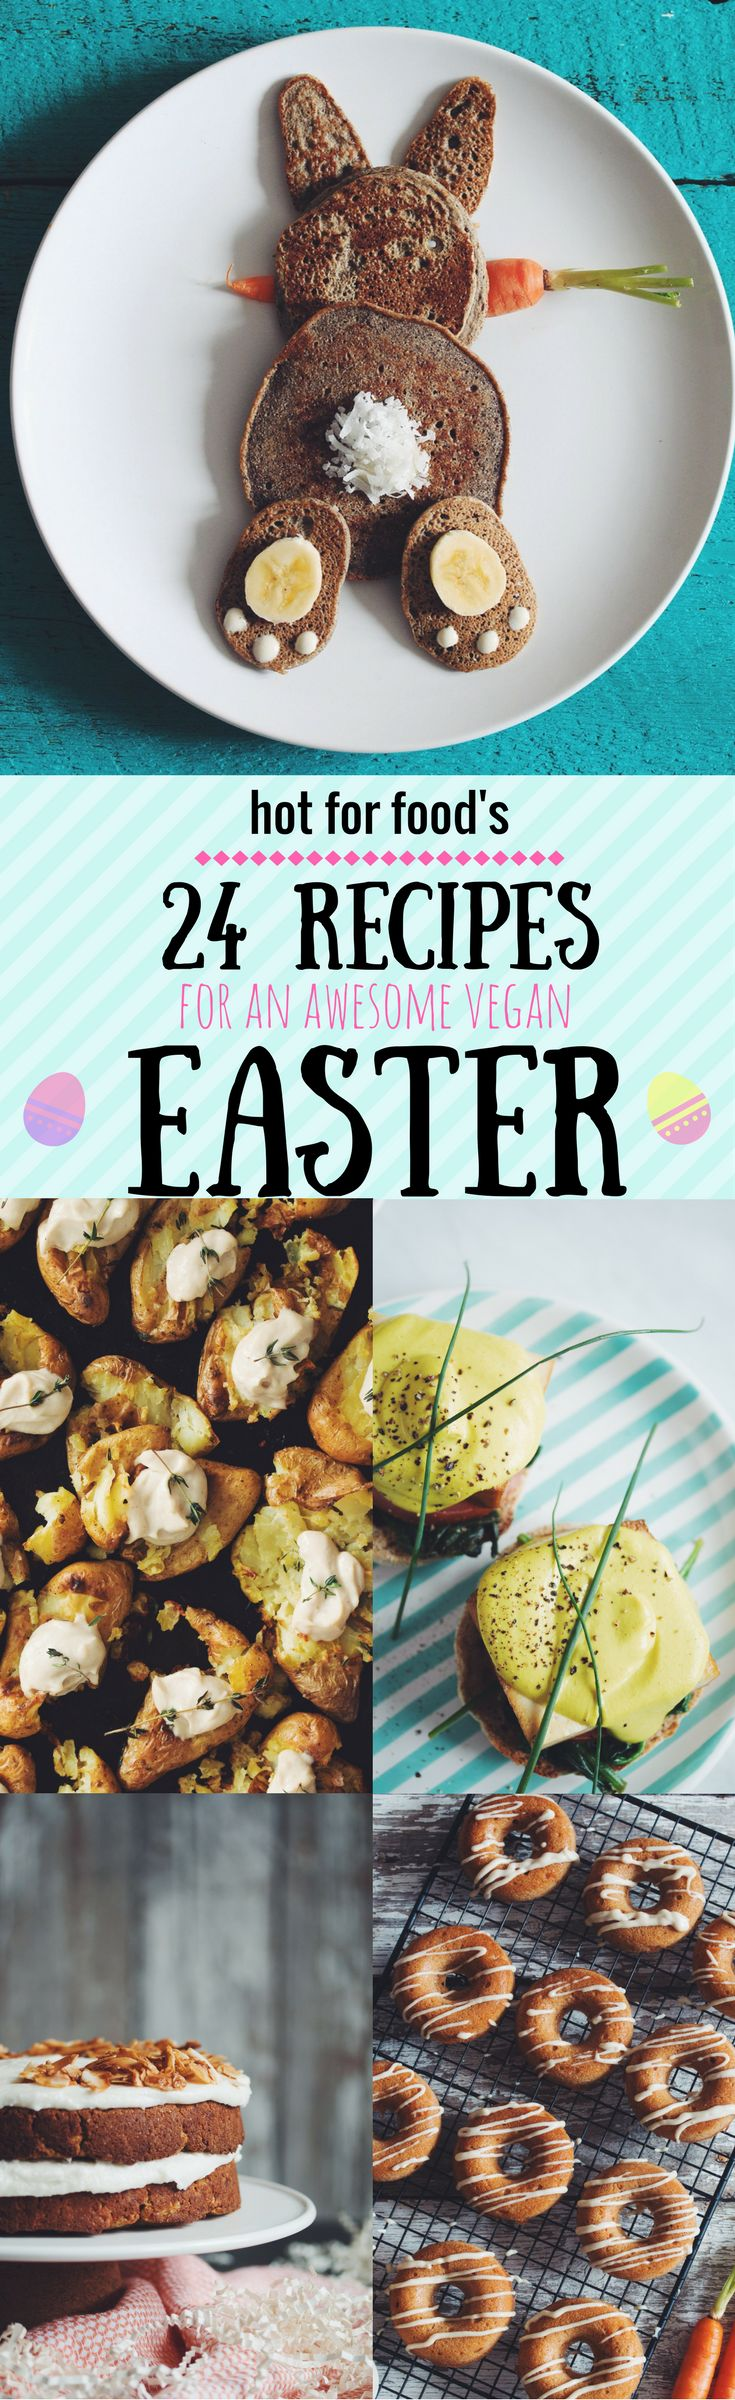 24 recipes for an awesome vegan Easter | hotforfoodblog.com